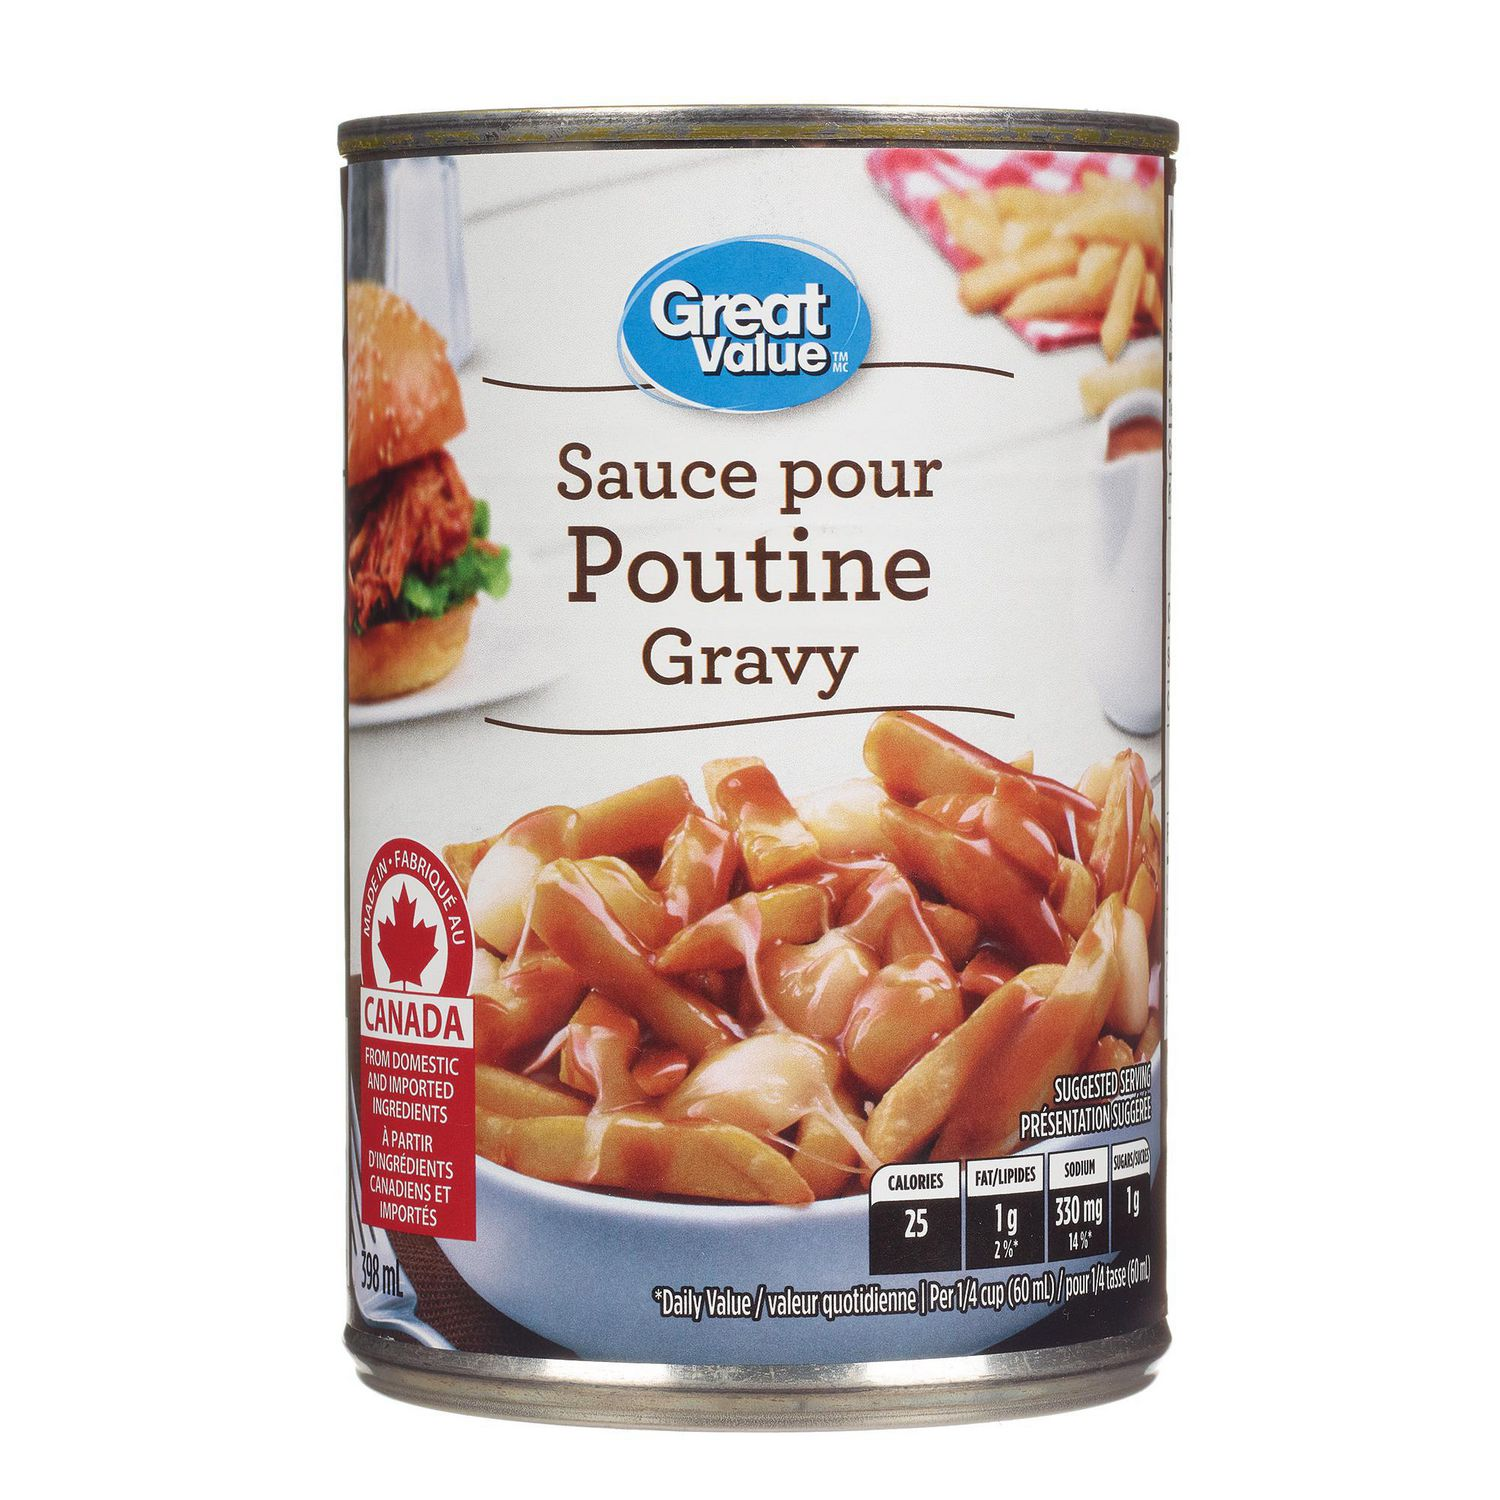 Poutine Chronicles: Canned Poutine Sauce |Canned Poutine Sauce